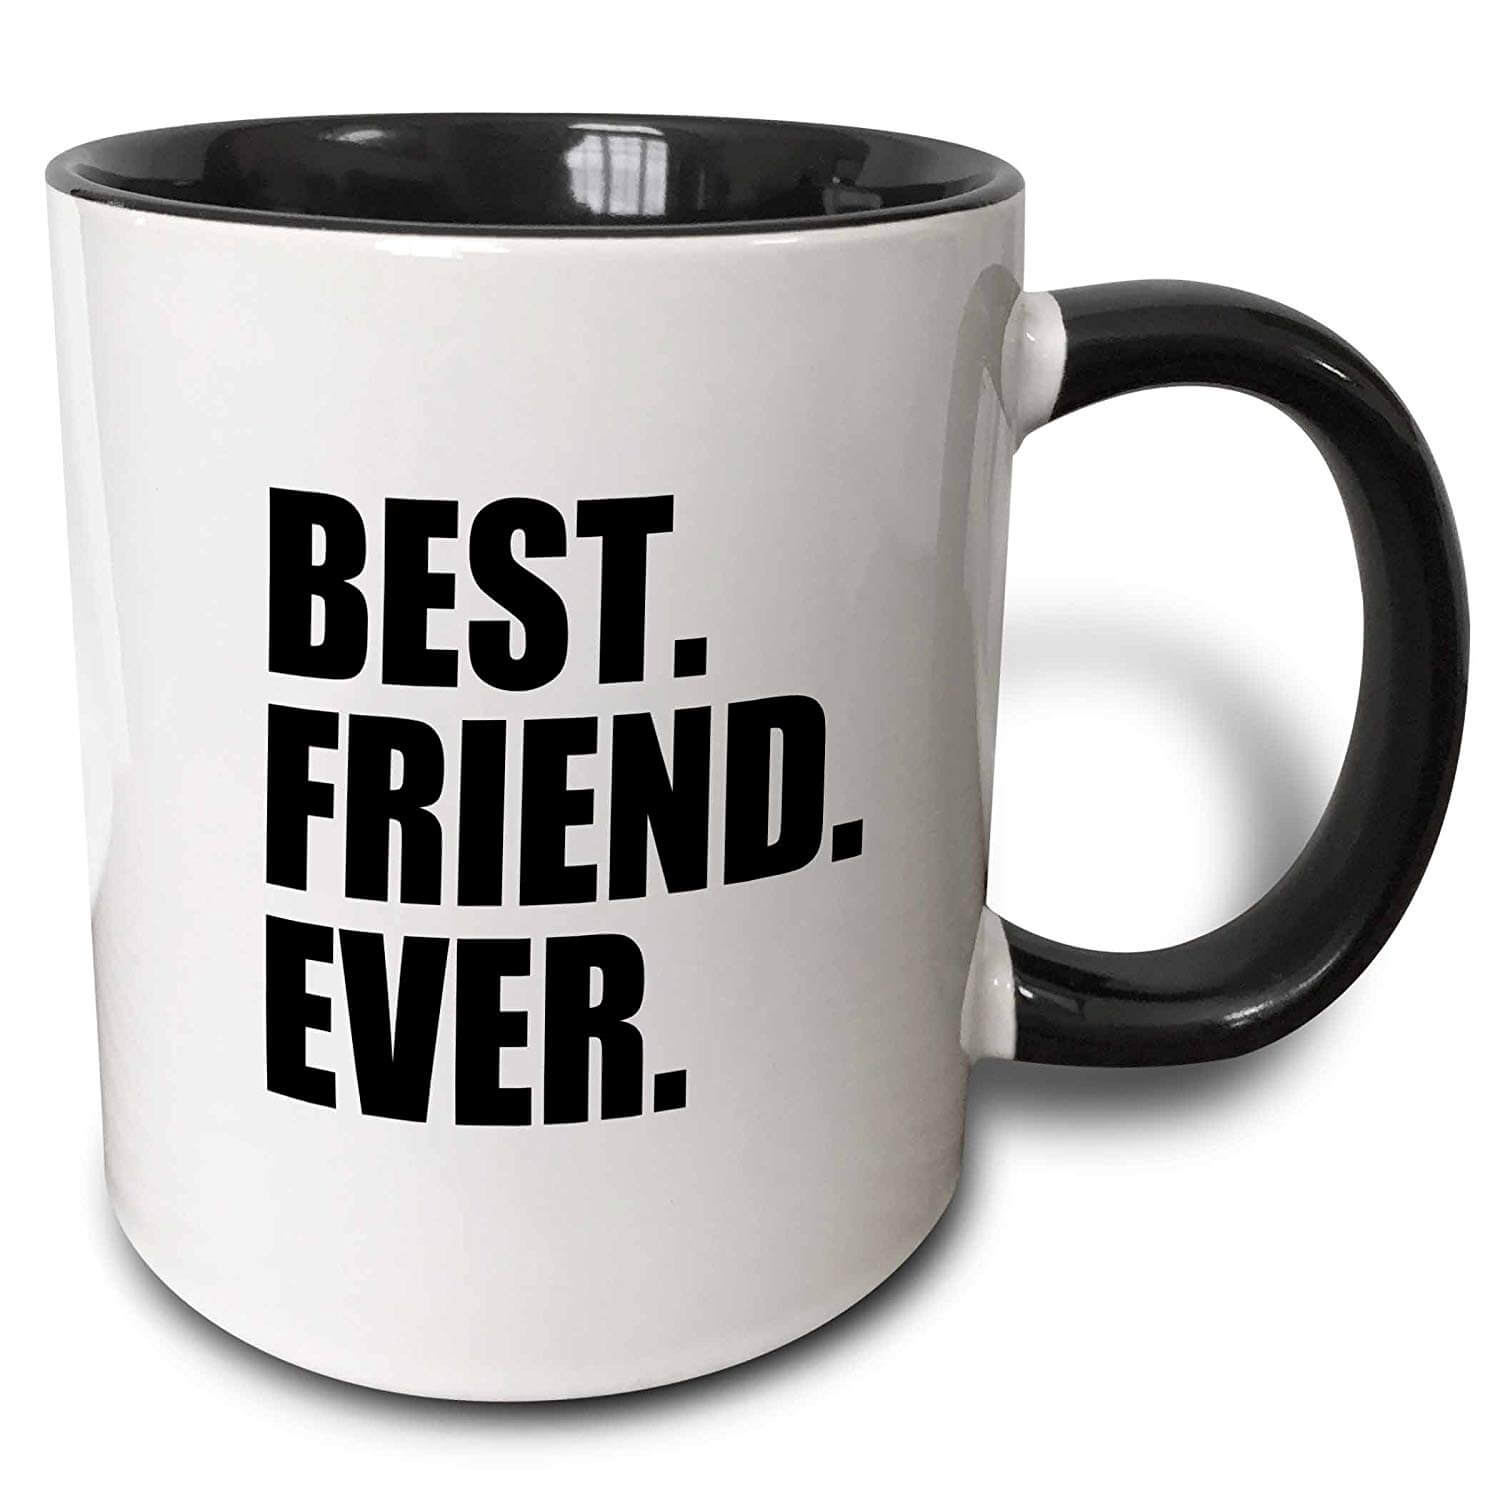 Best Friend Ever Coffee Mug Black & White 11 oz